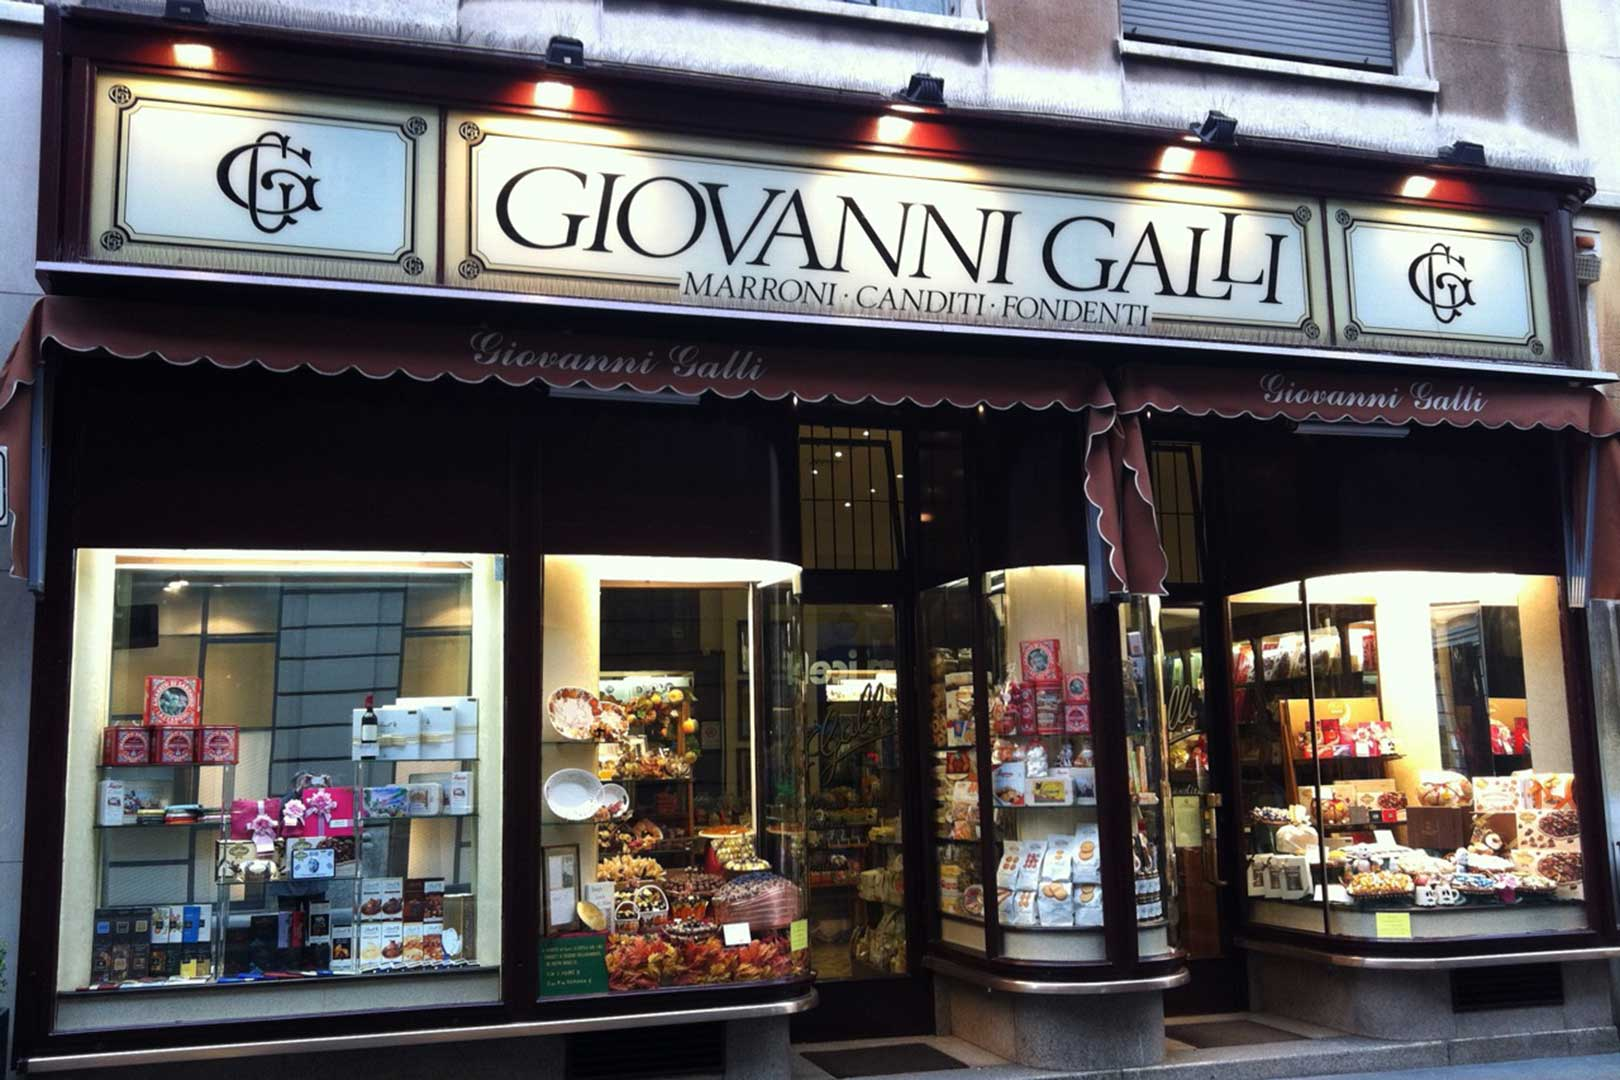 Giovanni Galli Glaces Marrons